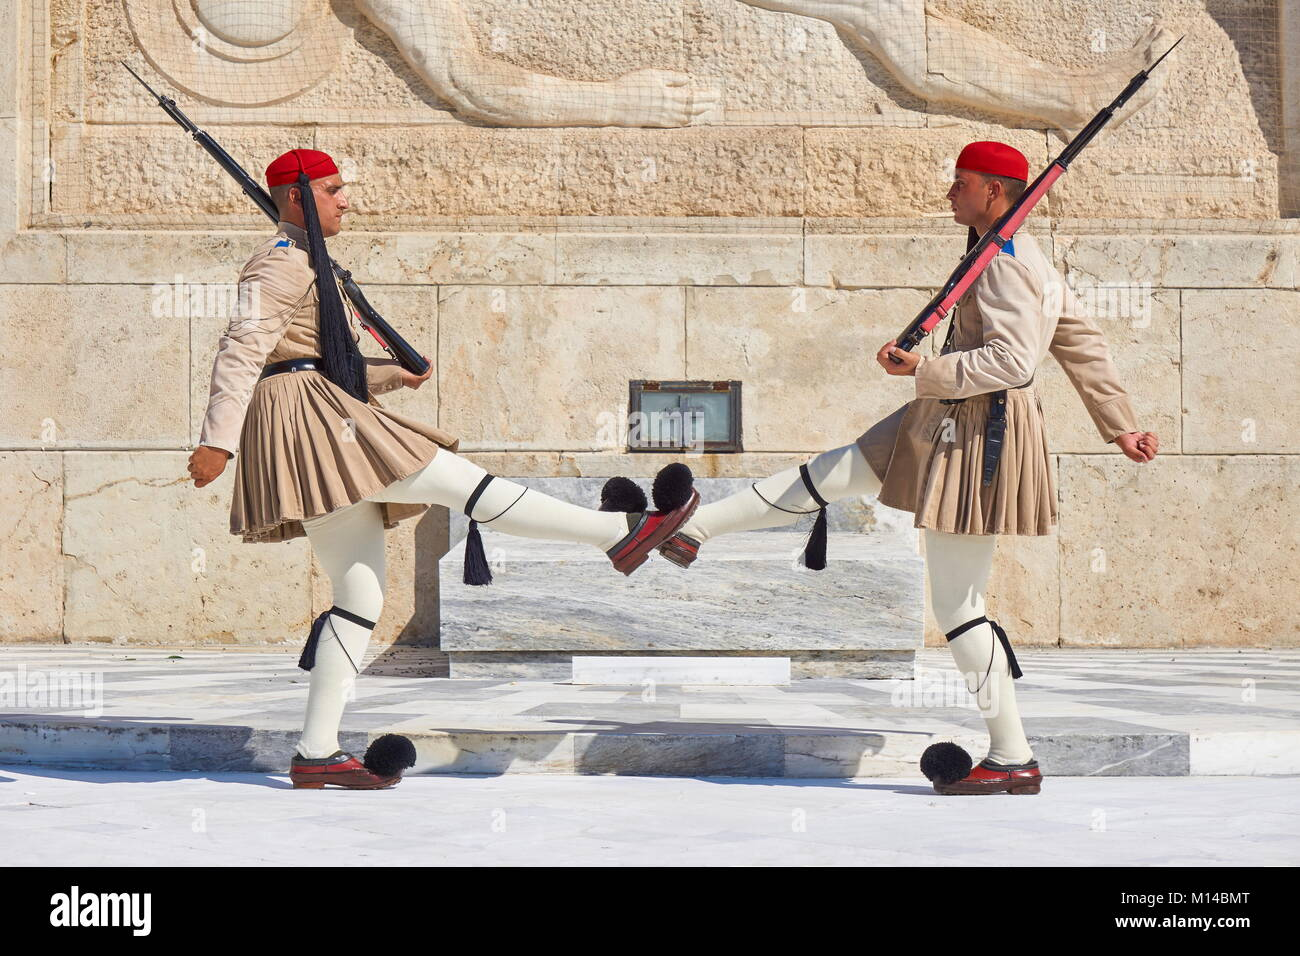 Athens - Evzones changing the guard at the Tomb of the Unknown Soldier, Greece Stock Photo